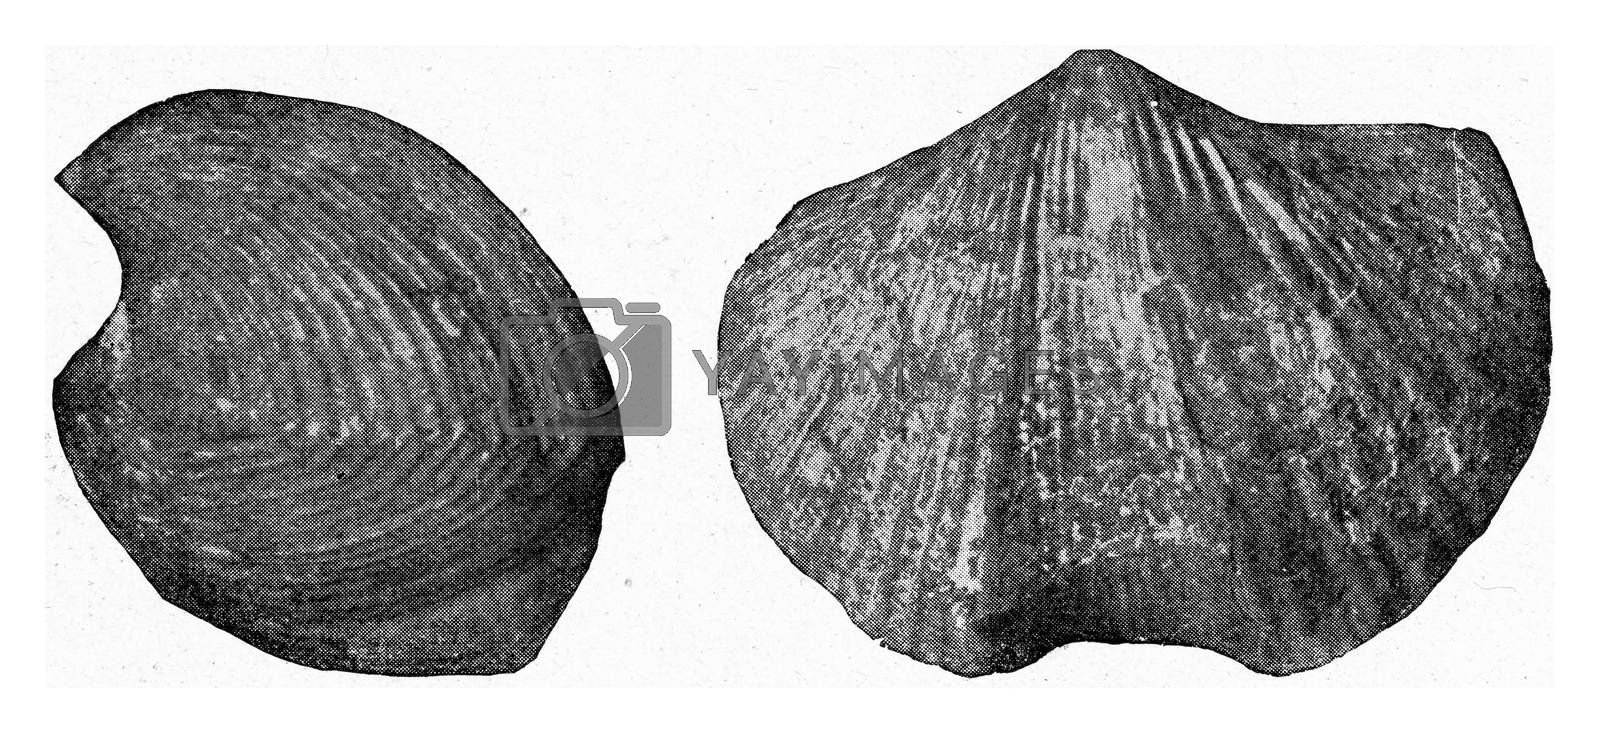 Fossil brachiopod of Carboniferous limestone, vintage engraved illustration. From the Universe and Humanity, 1910.